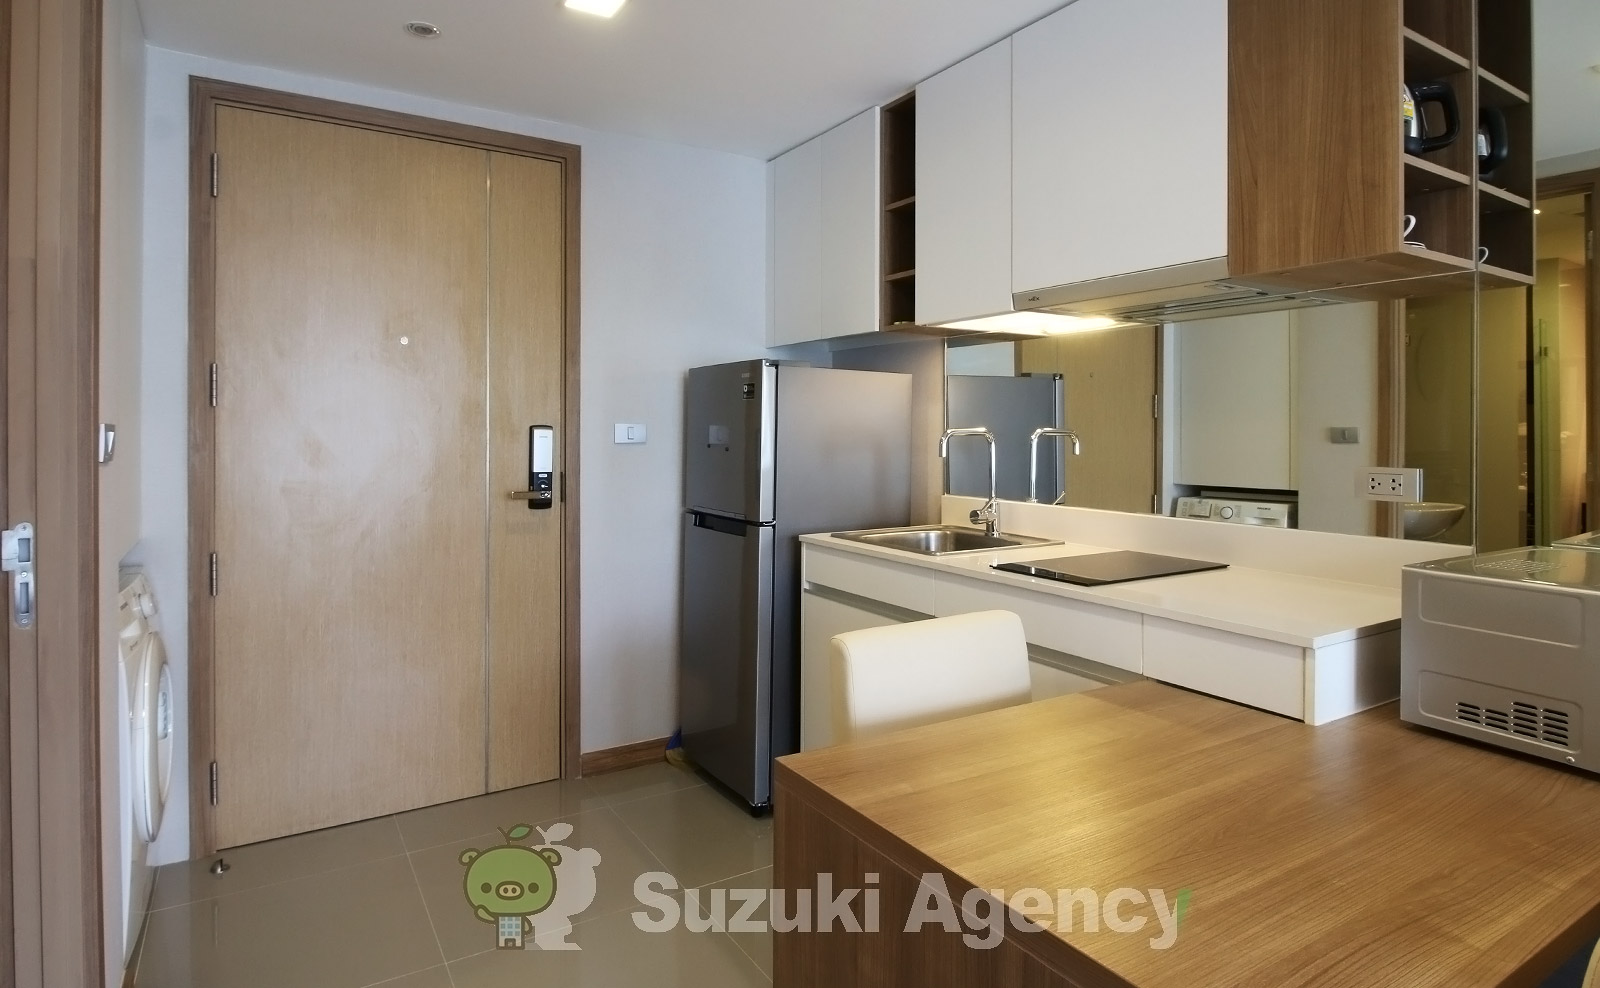 InterLux Premier Sukhumvit 13:1Bed Room Photos No.6